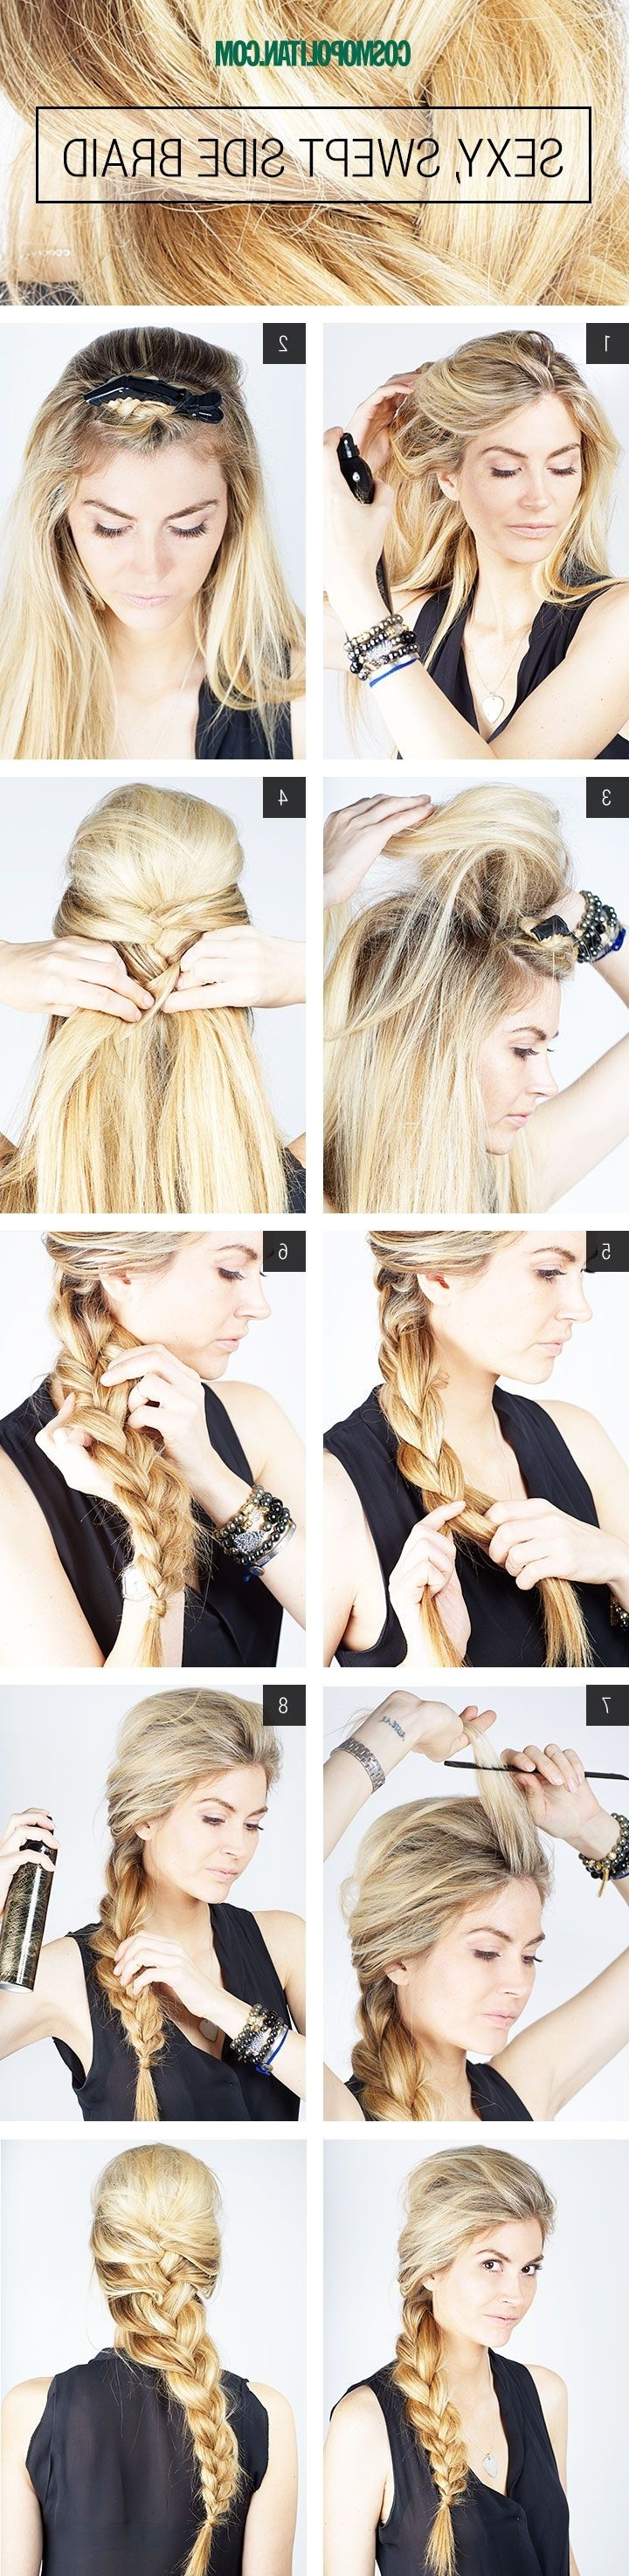 10 French Braids Hairstyles Tutorials: Everyday Hair Styles Throughout Most Current Three Strand Long Side Braided Hairstyles (Gallery 2 of 20)